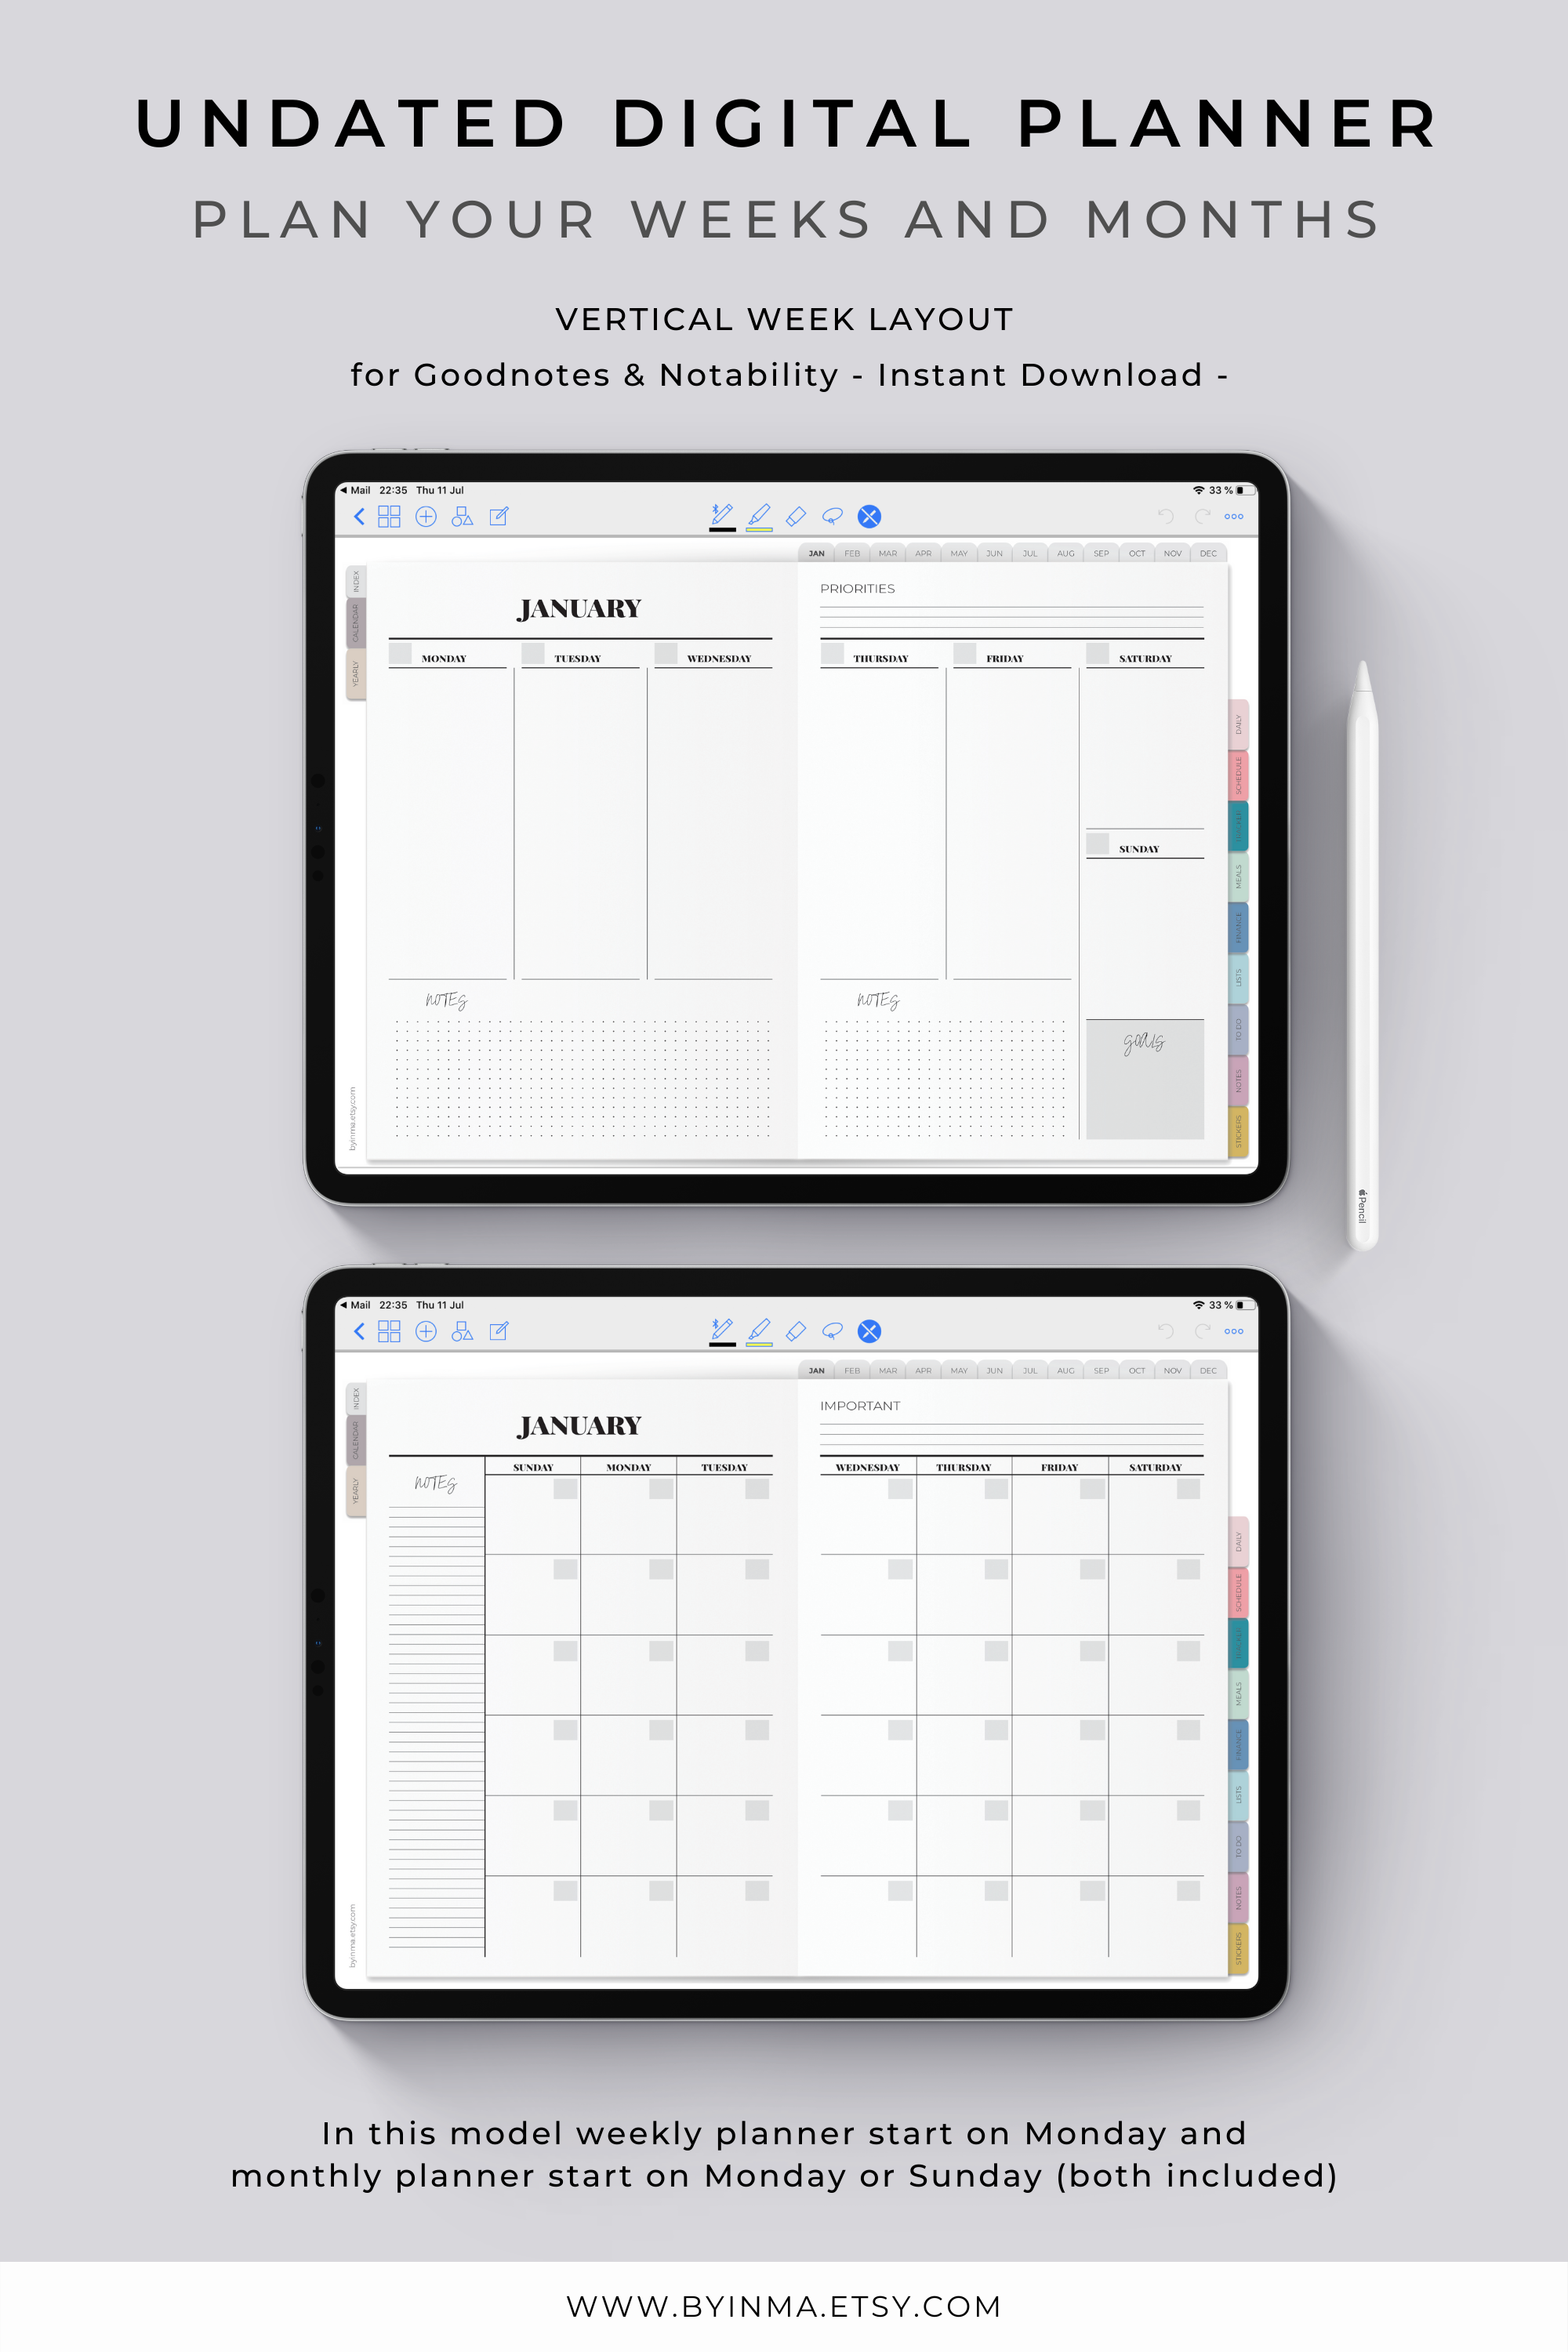 Digital Planner Goodnotes Ipad Pro Notability Template Undated Weekly Planner With Hyperlinks And Vertical Layout Color Tabs 2 Covers Digital Planner Daily Planner Pages Undated Weekly Planner